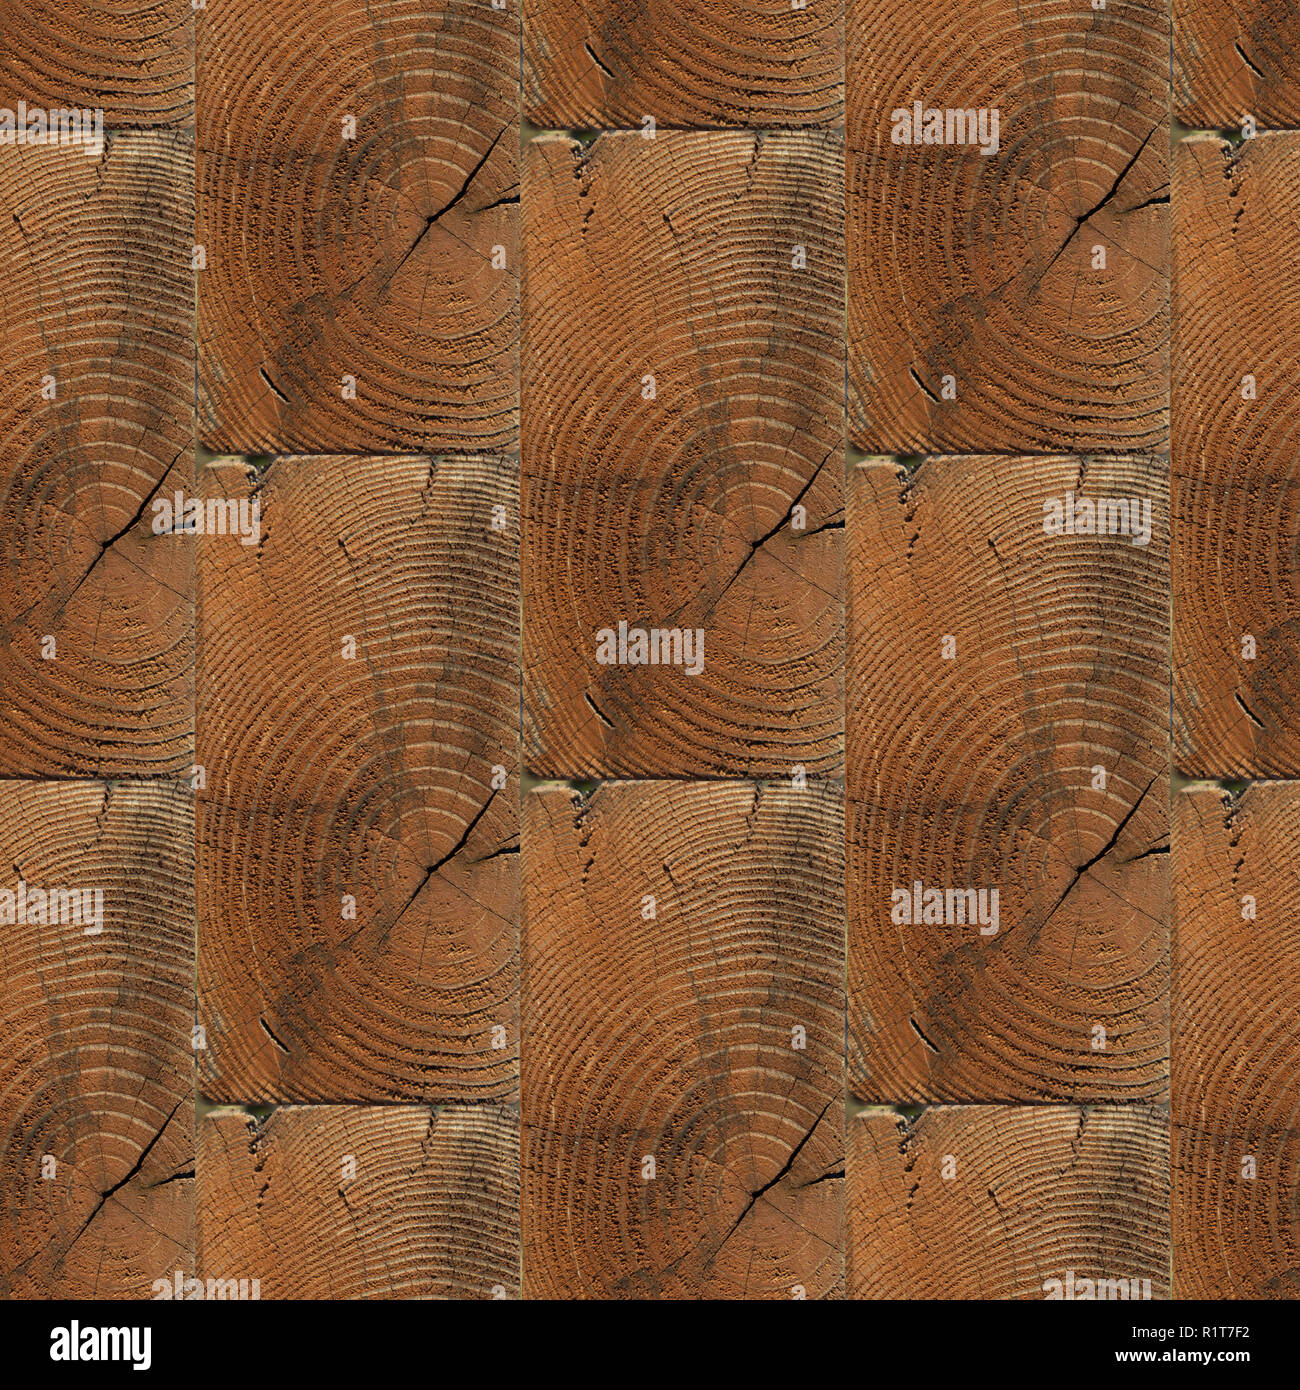 Abstract seamless pattern for designers of wooden bricks